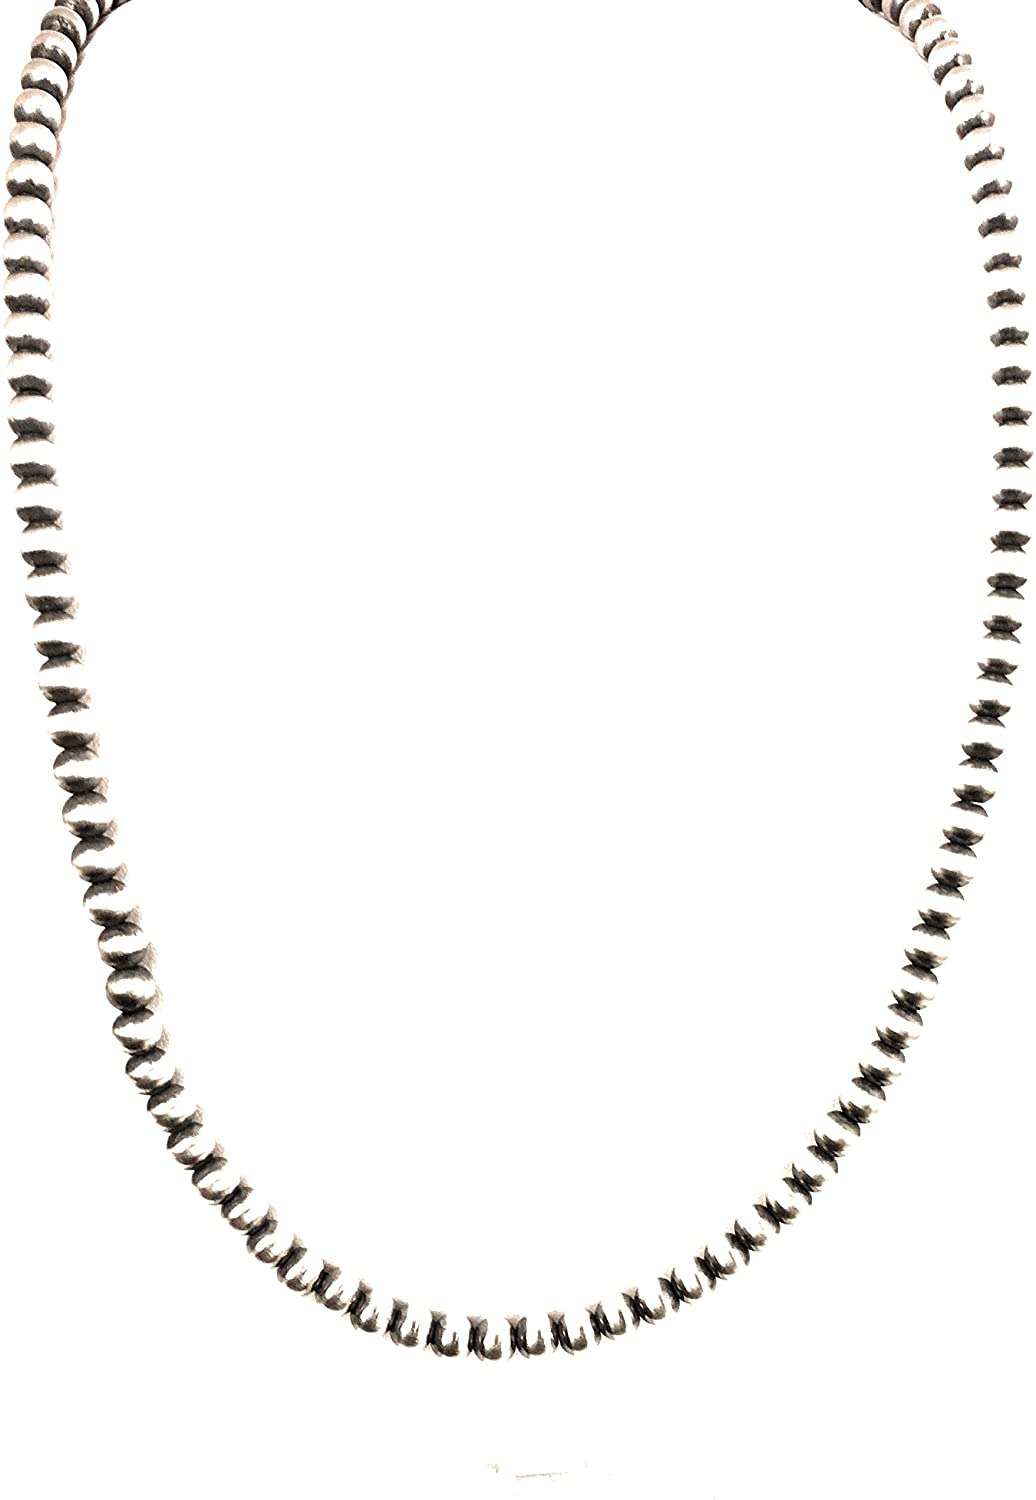 Southwestern Navajo Pearls 6mm Sterling Silver Bead Necklace 24